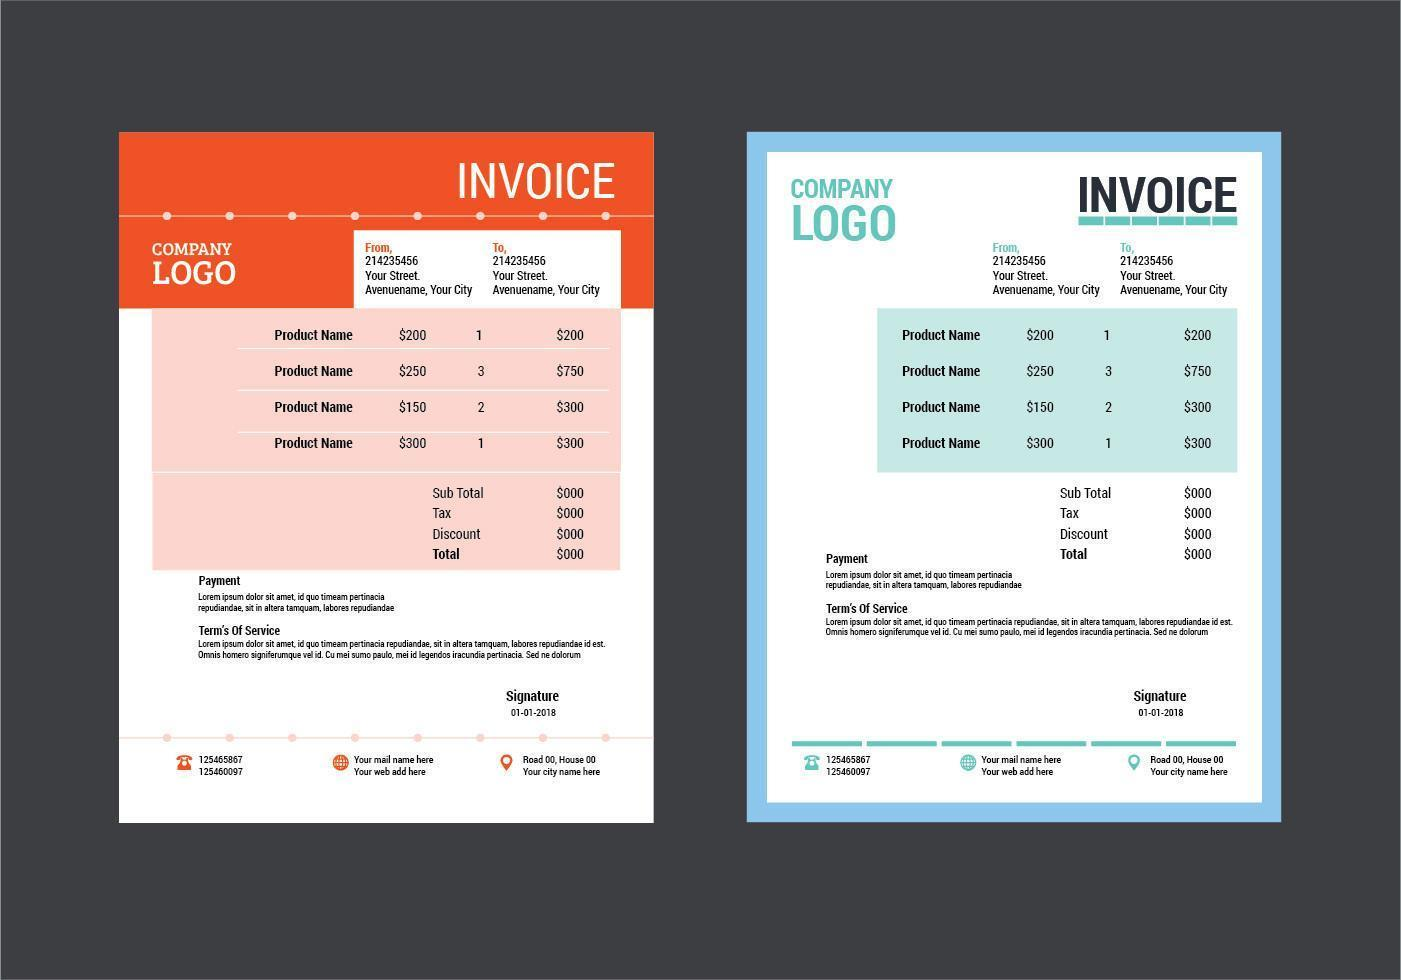 Invoice Template Design from static.vecteezy.com